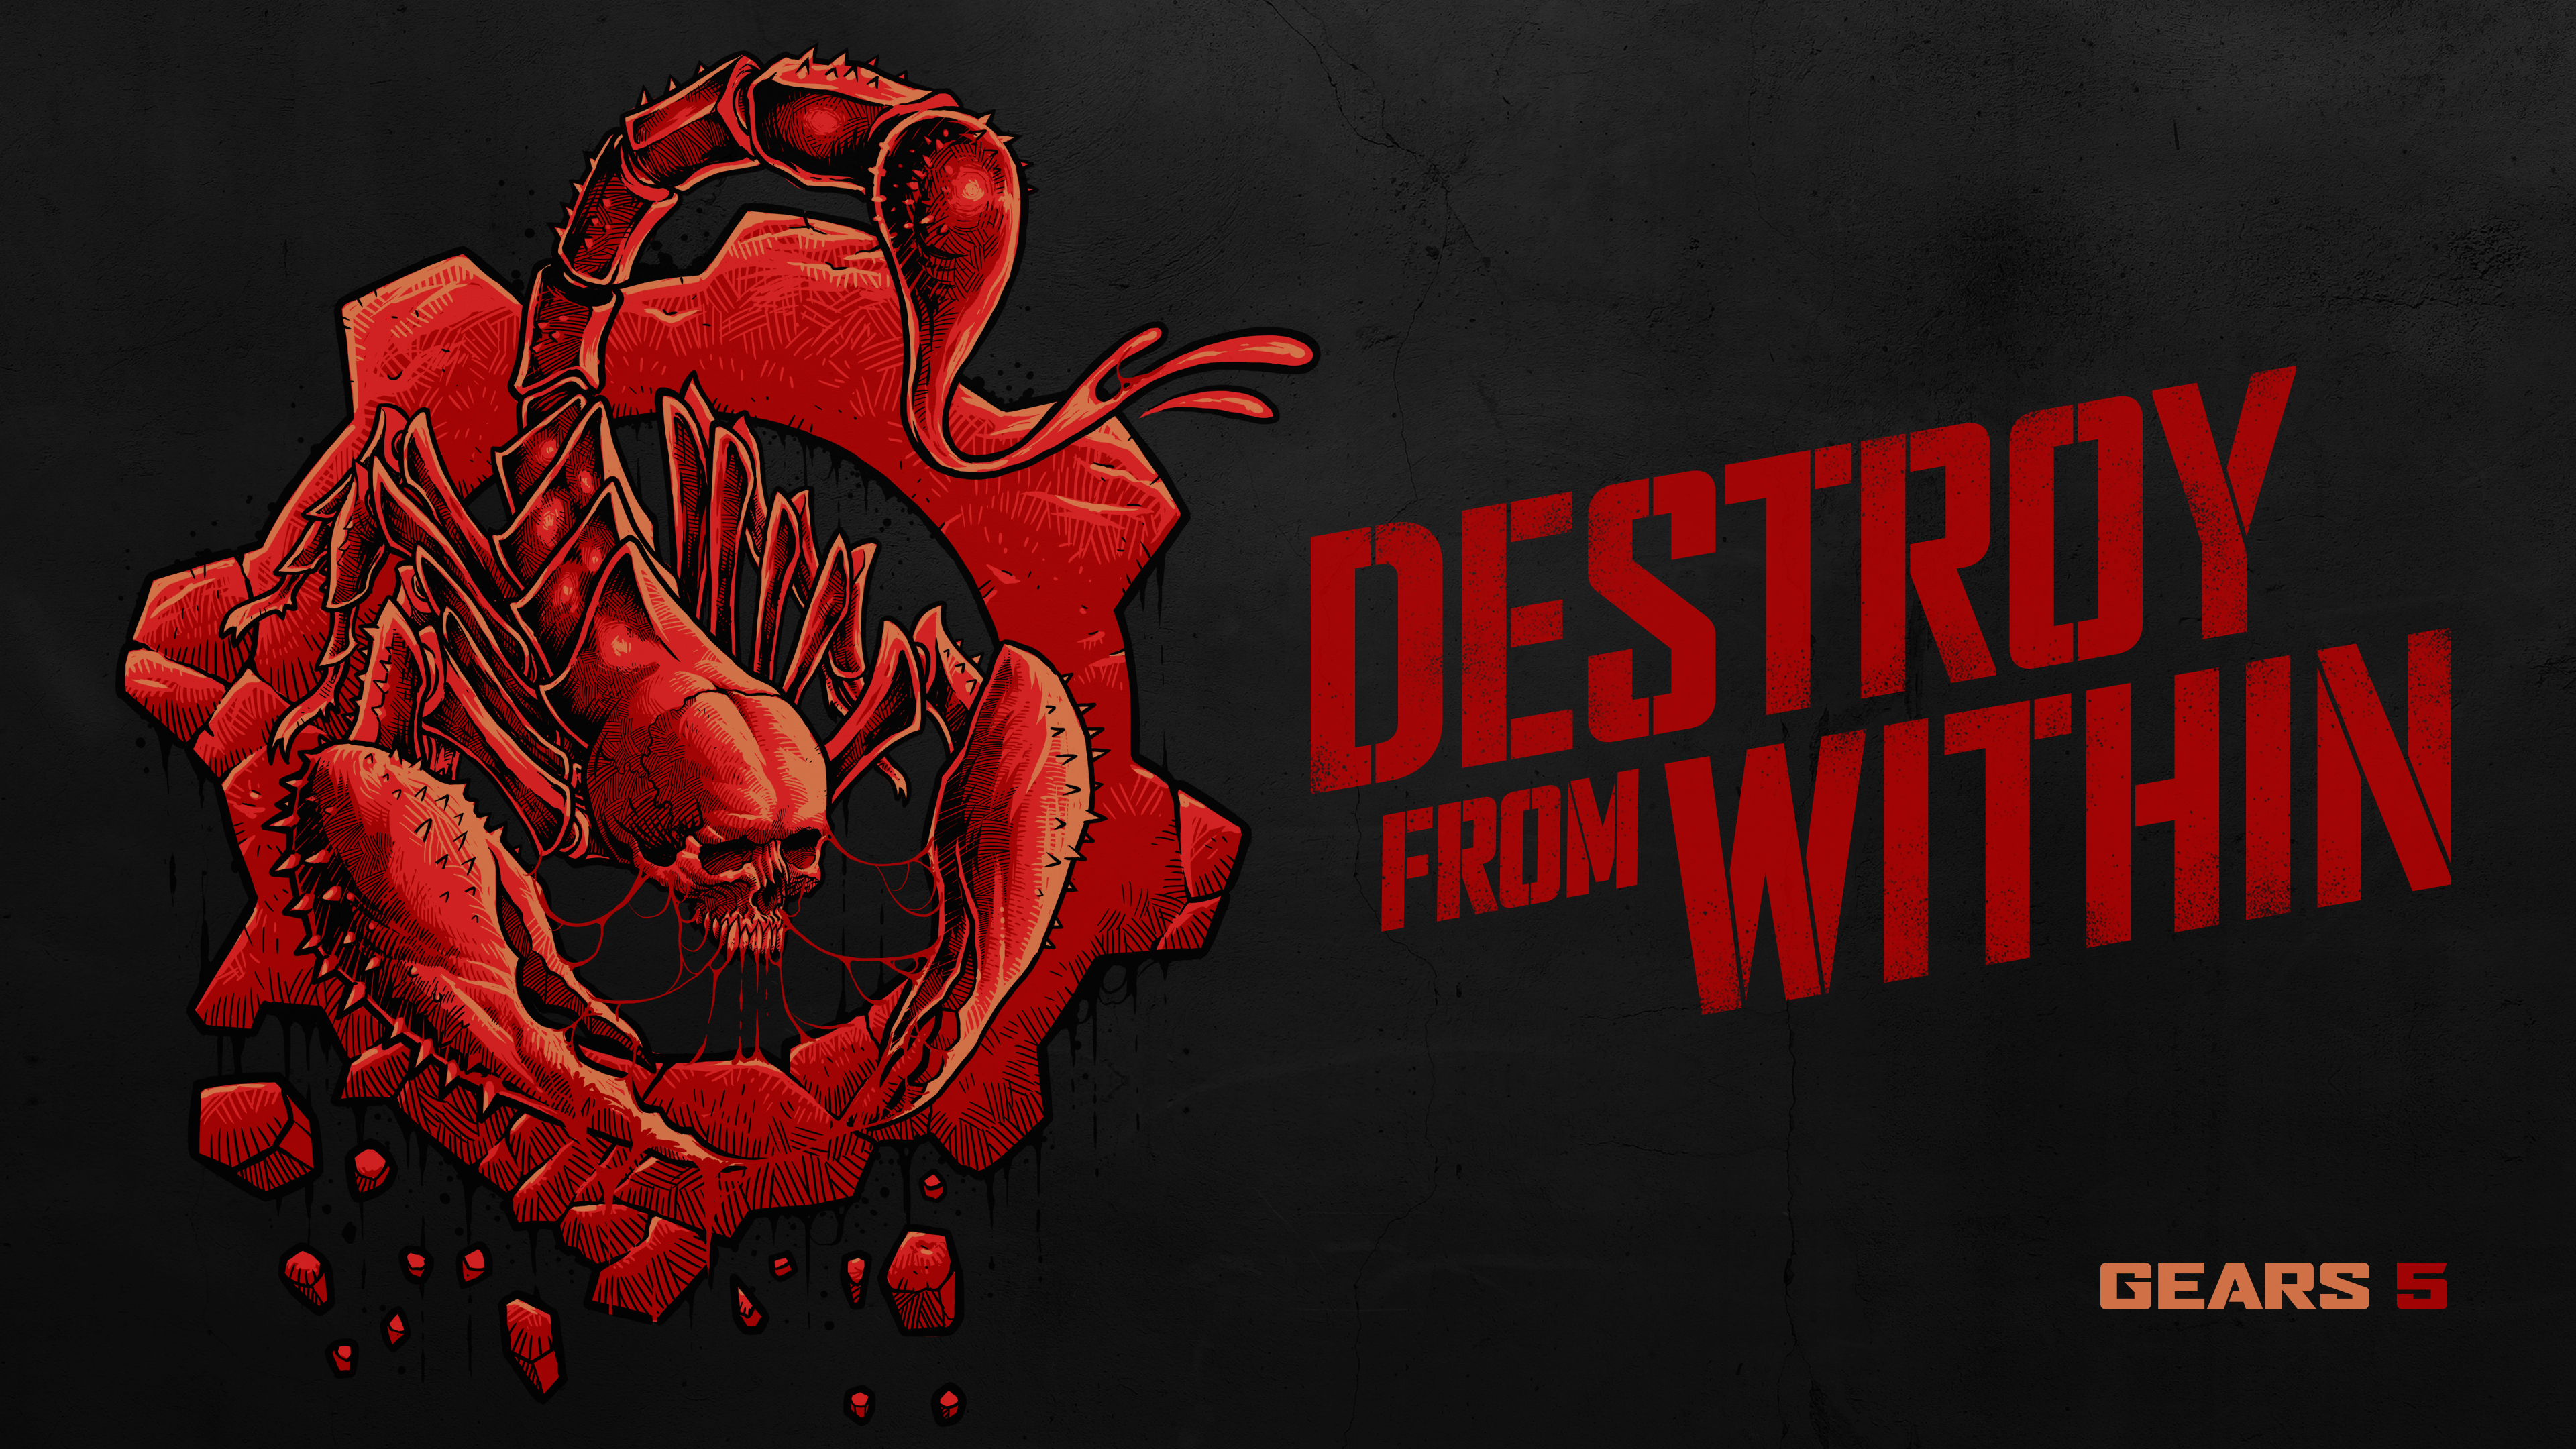 Wallpaper 4k Escape Destroy From Within Gears 5 2019 Games